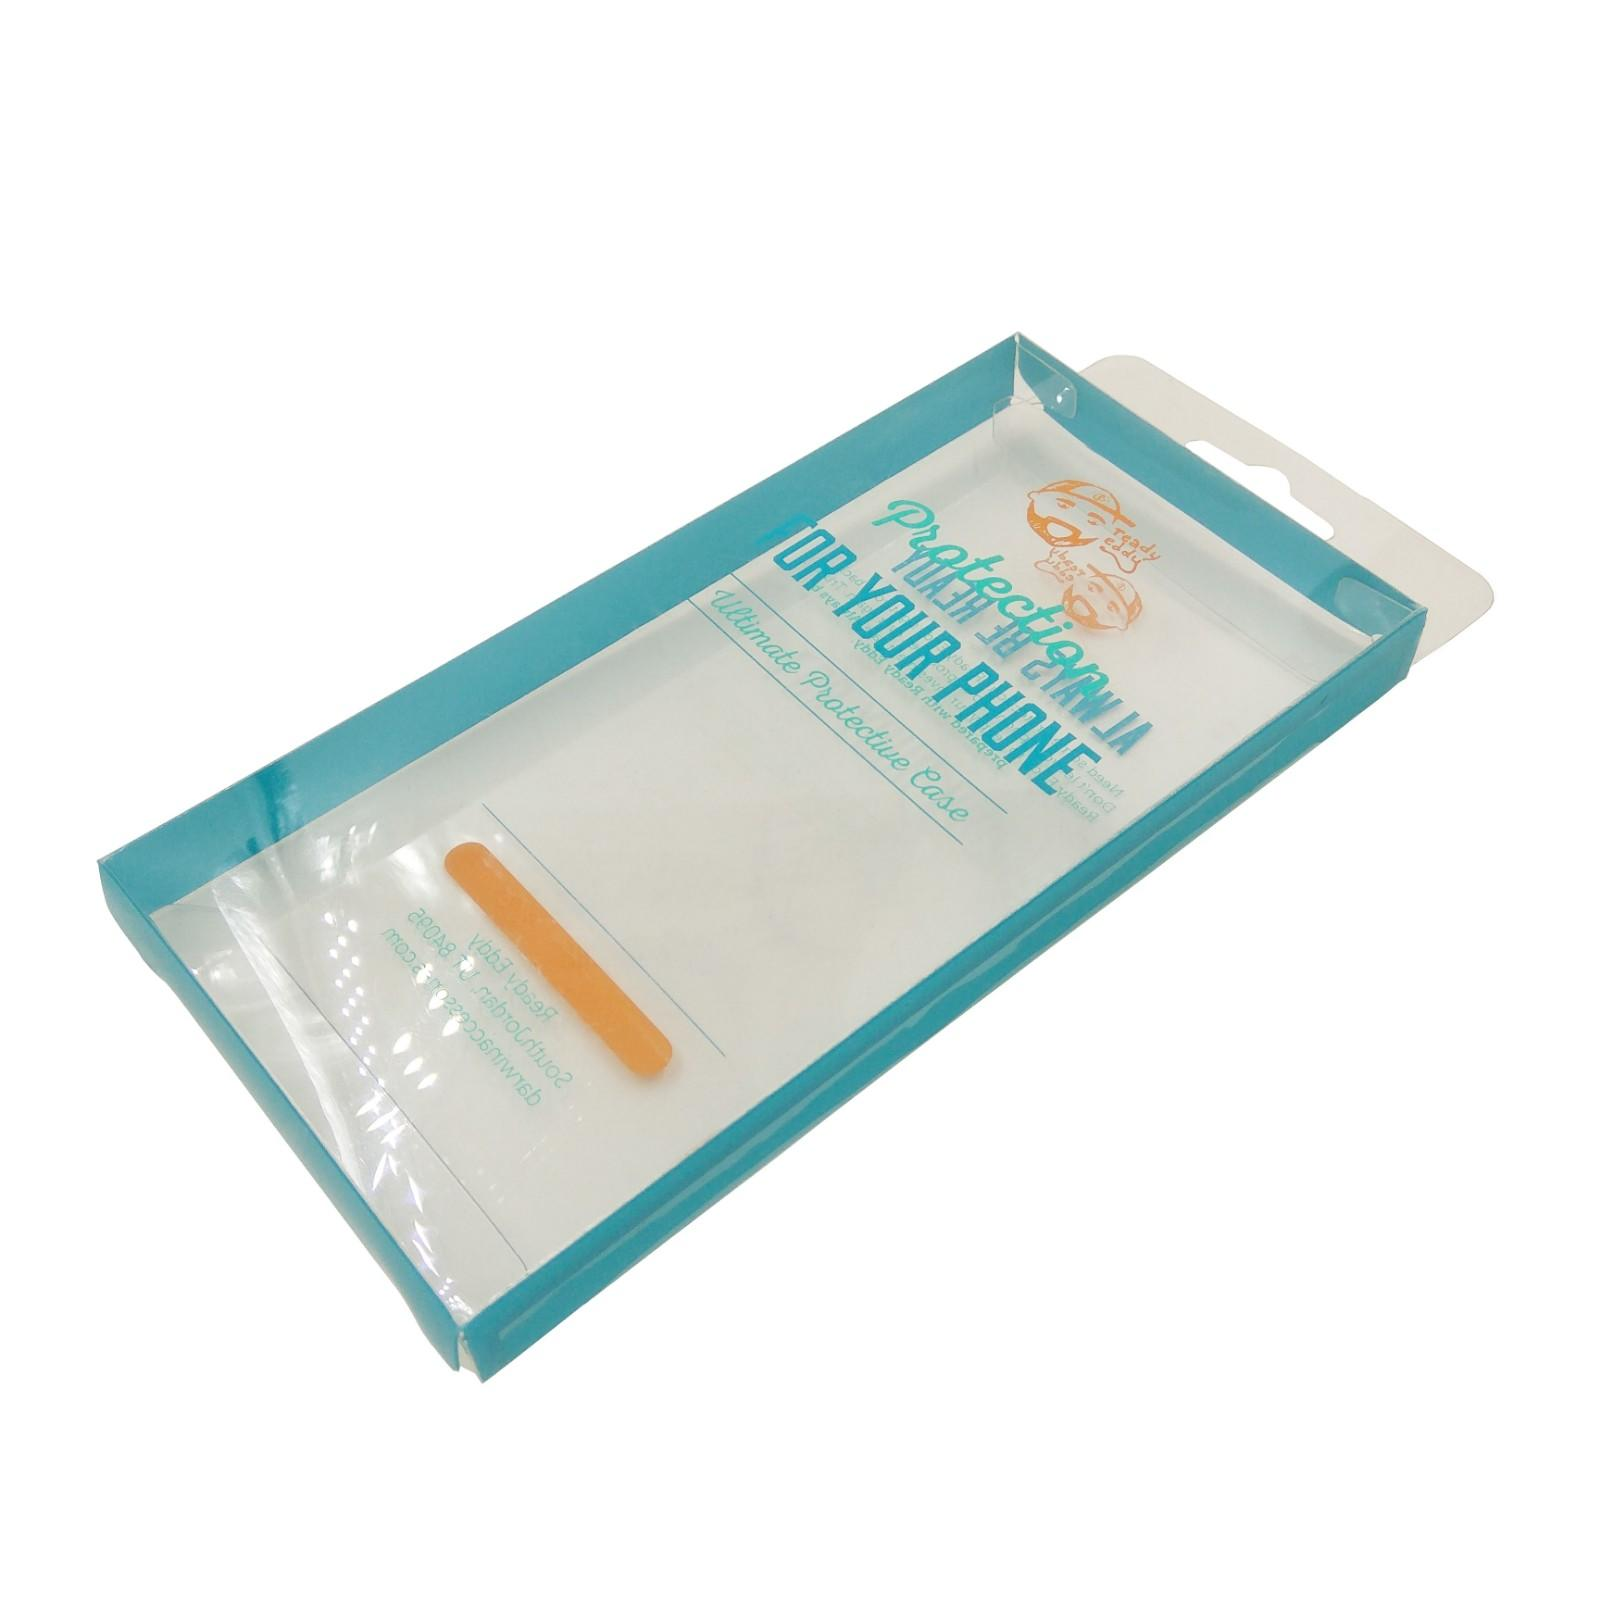 Yijianxing Plastic Products printing plastic box packaging widely-use for decor-3